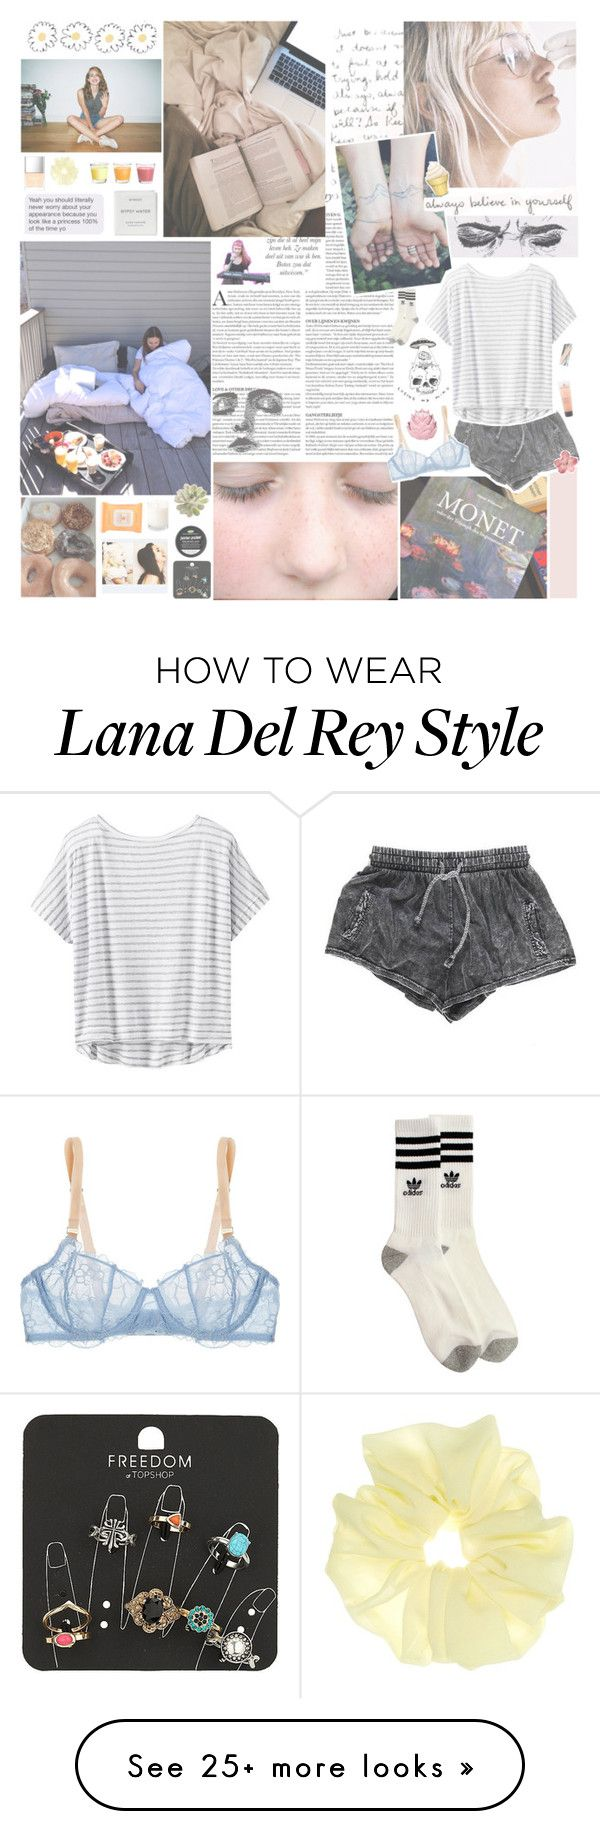 """i'm looking through you while you're looking through your phone"" by fairhykid on Polyvore featuring Byredo, Topshop, Urban Outfitters, Burt's Bees, Gaia, Athleta, STELLA McCARTNEY, Butter London, adidas and Zara Home"